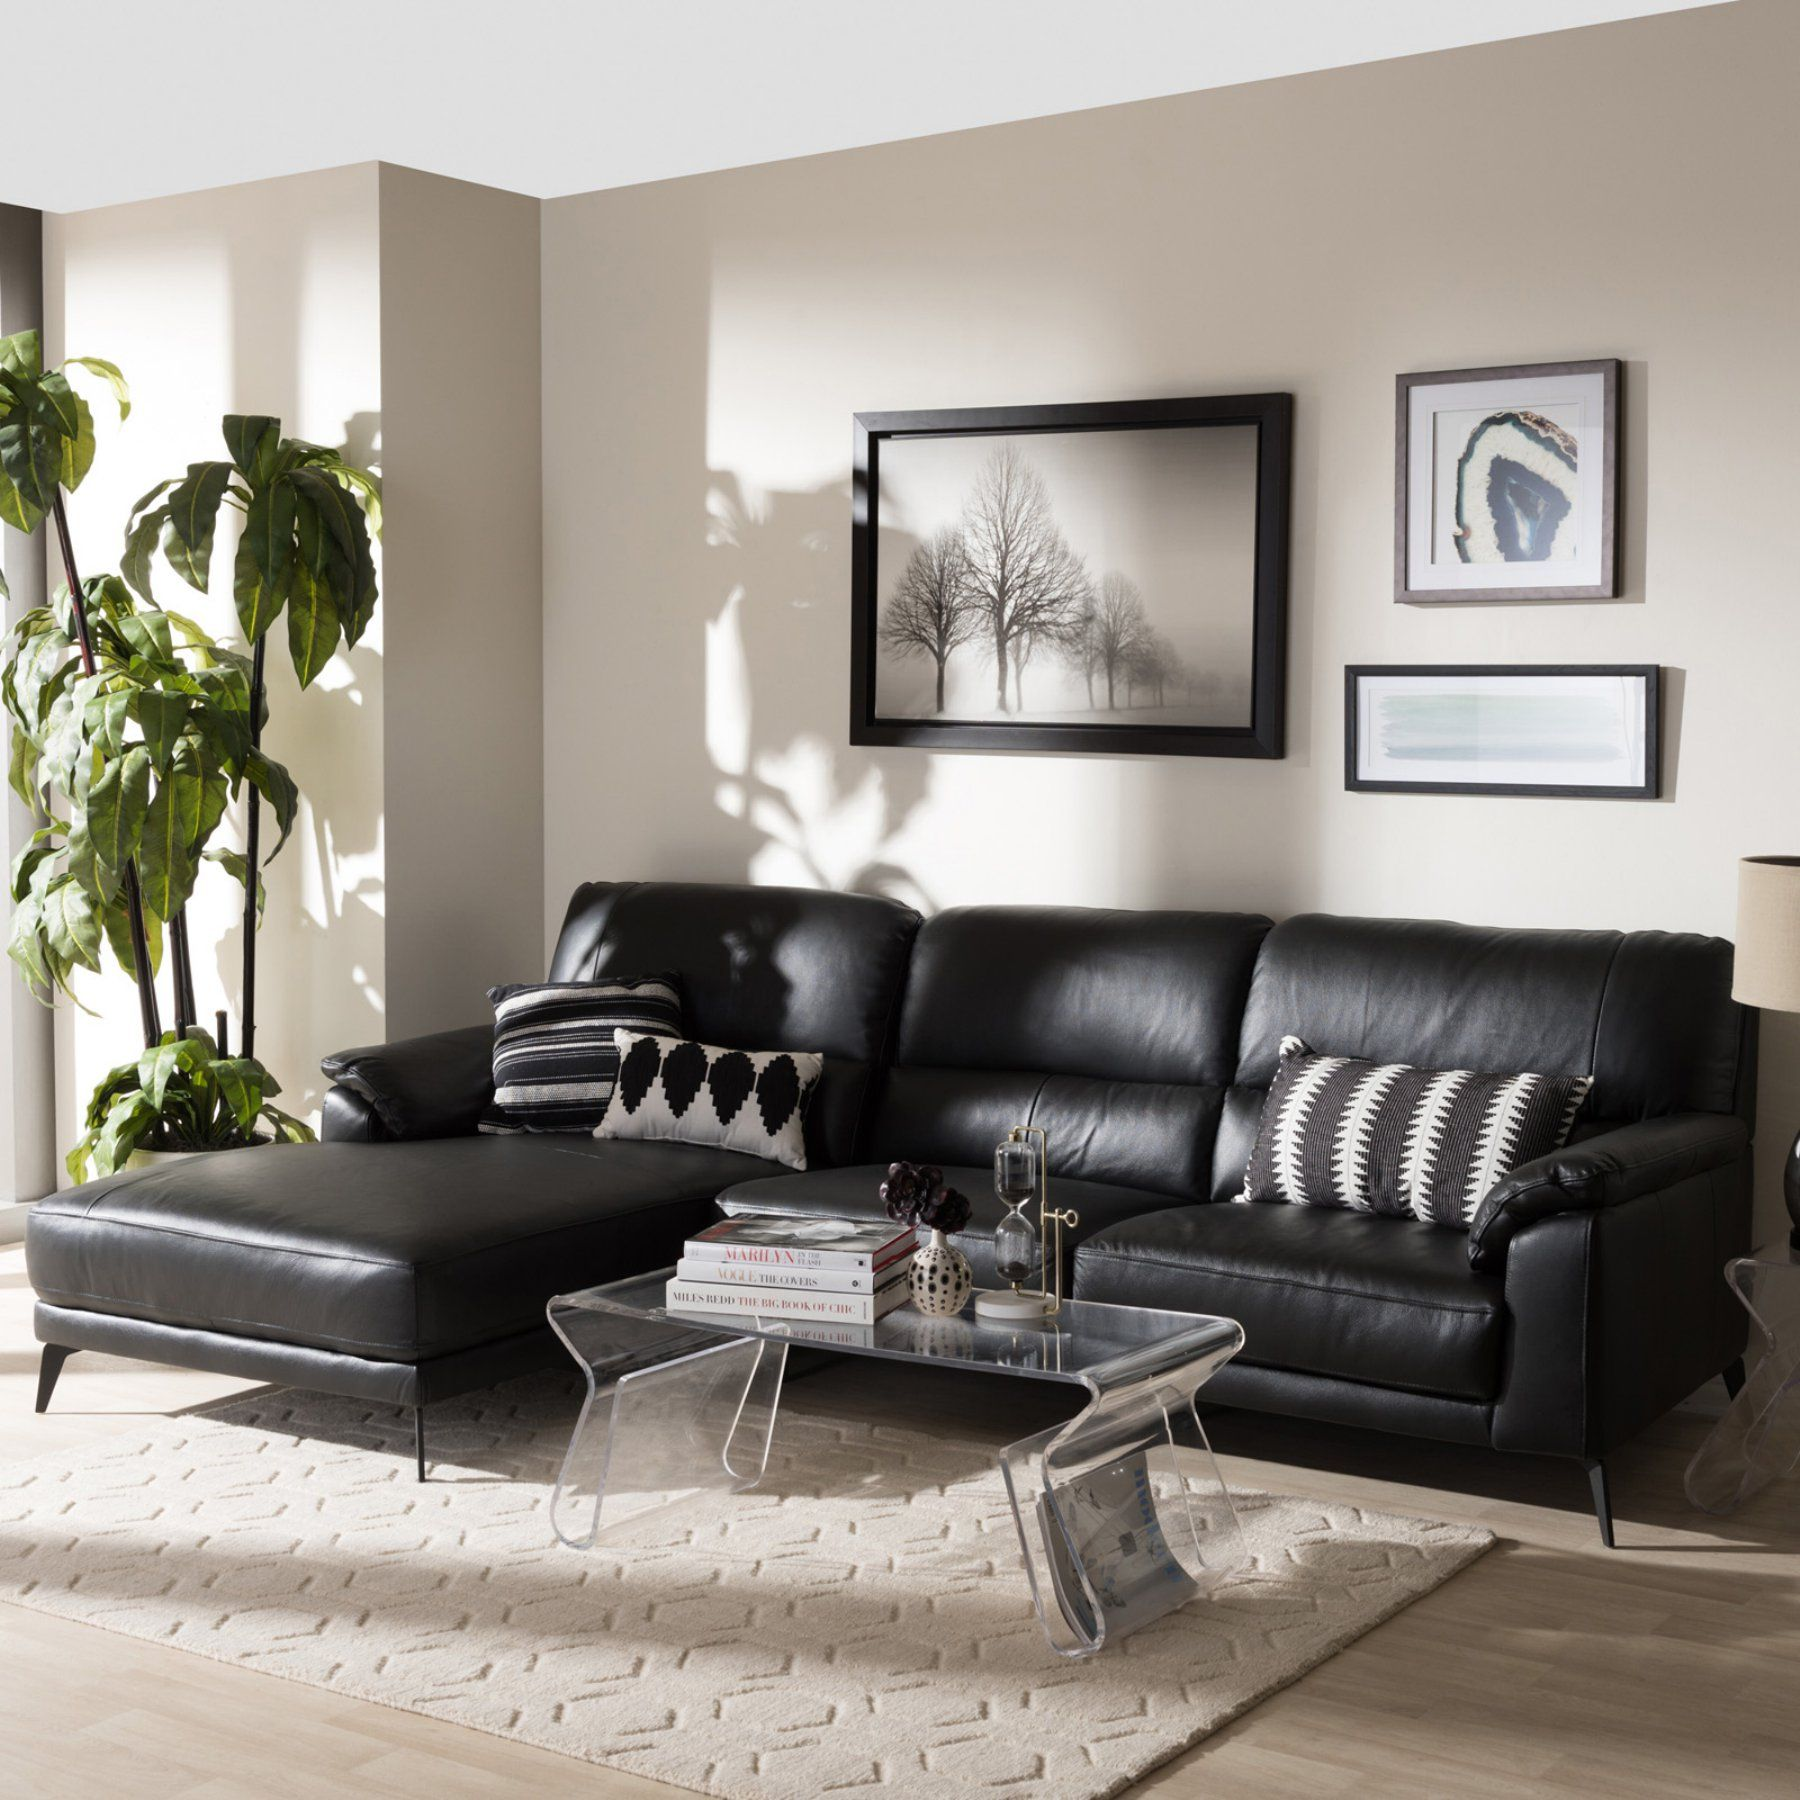 Baxton Studio Radford Modern And Contemporary Leather Left Facing Chaise 2 Piece Section With Images Leather Couches Living Room Black Living Room Leather Sofa Living Room